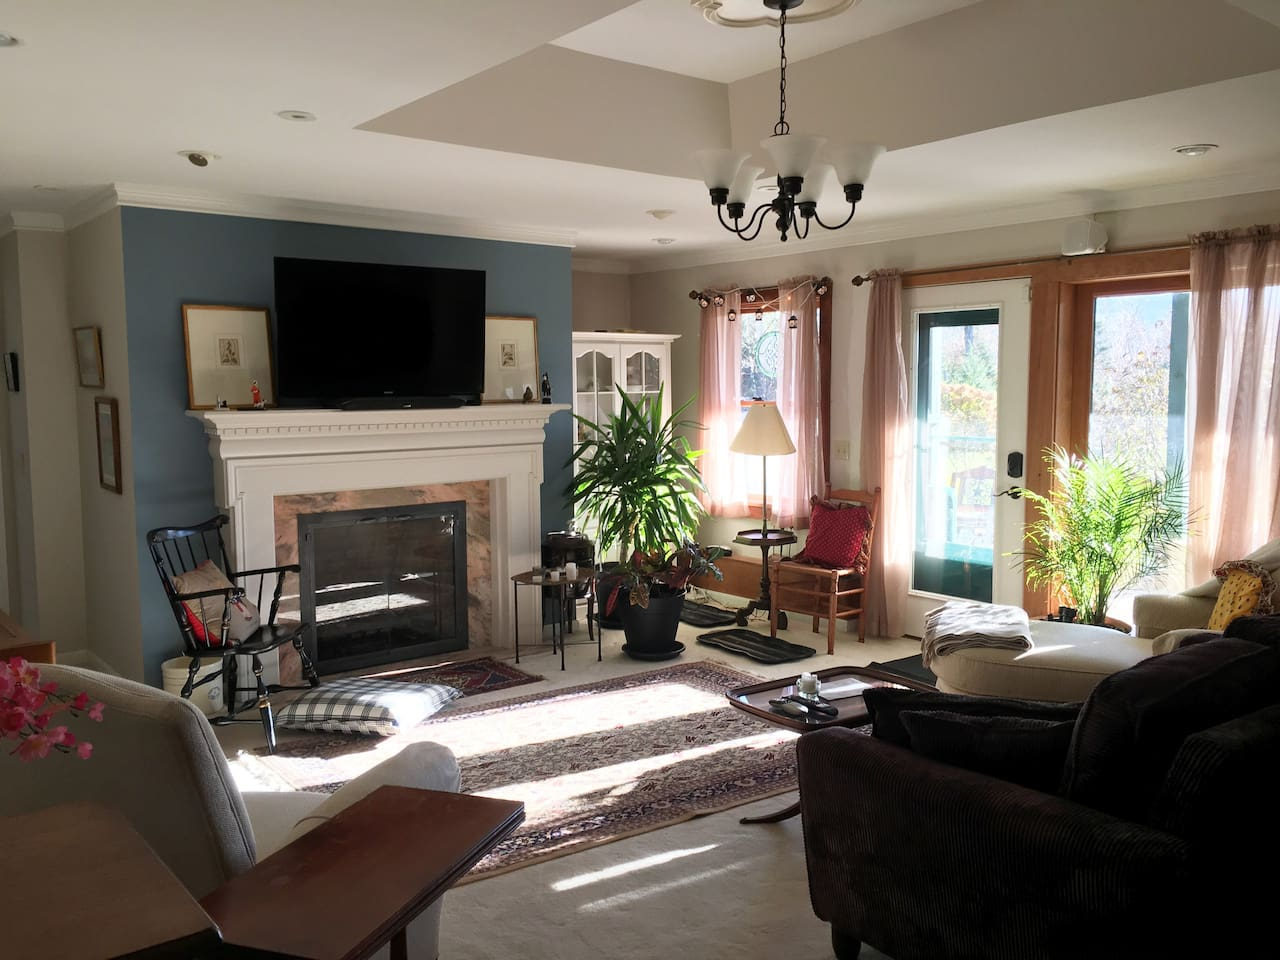 """Apt. """"A"""" Living room, comfort for four+,  Sun-flooded, heated Radiant floors, push-button propane (HOT!) Fireplace, """"Luxury Living"""""""